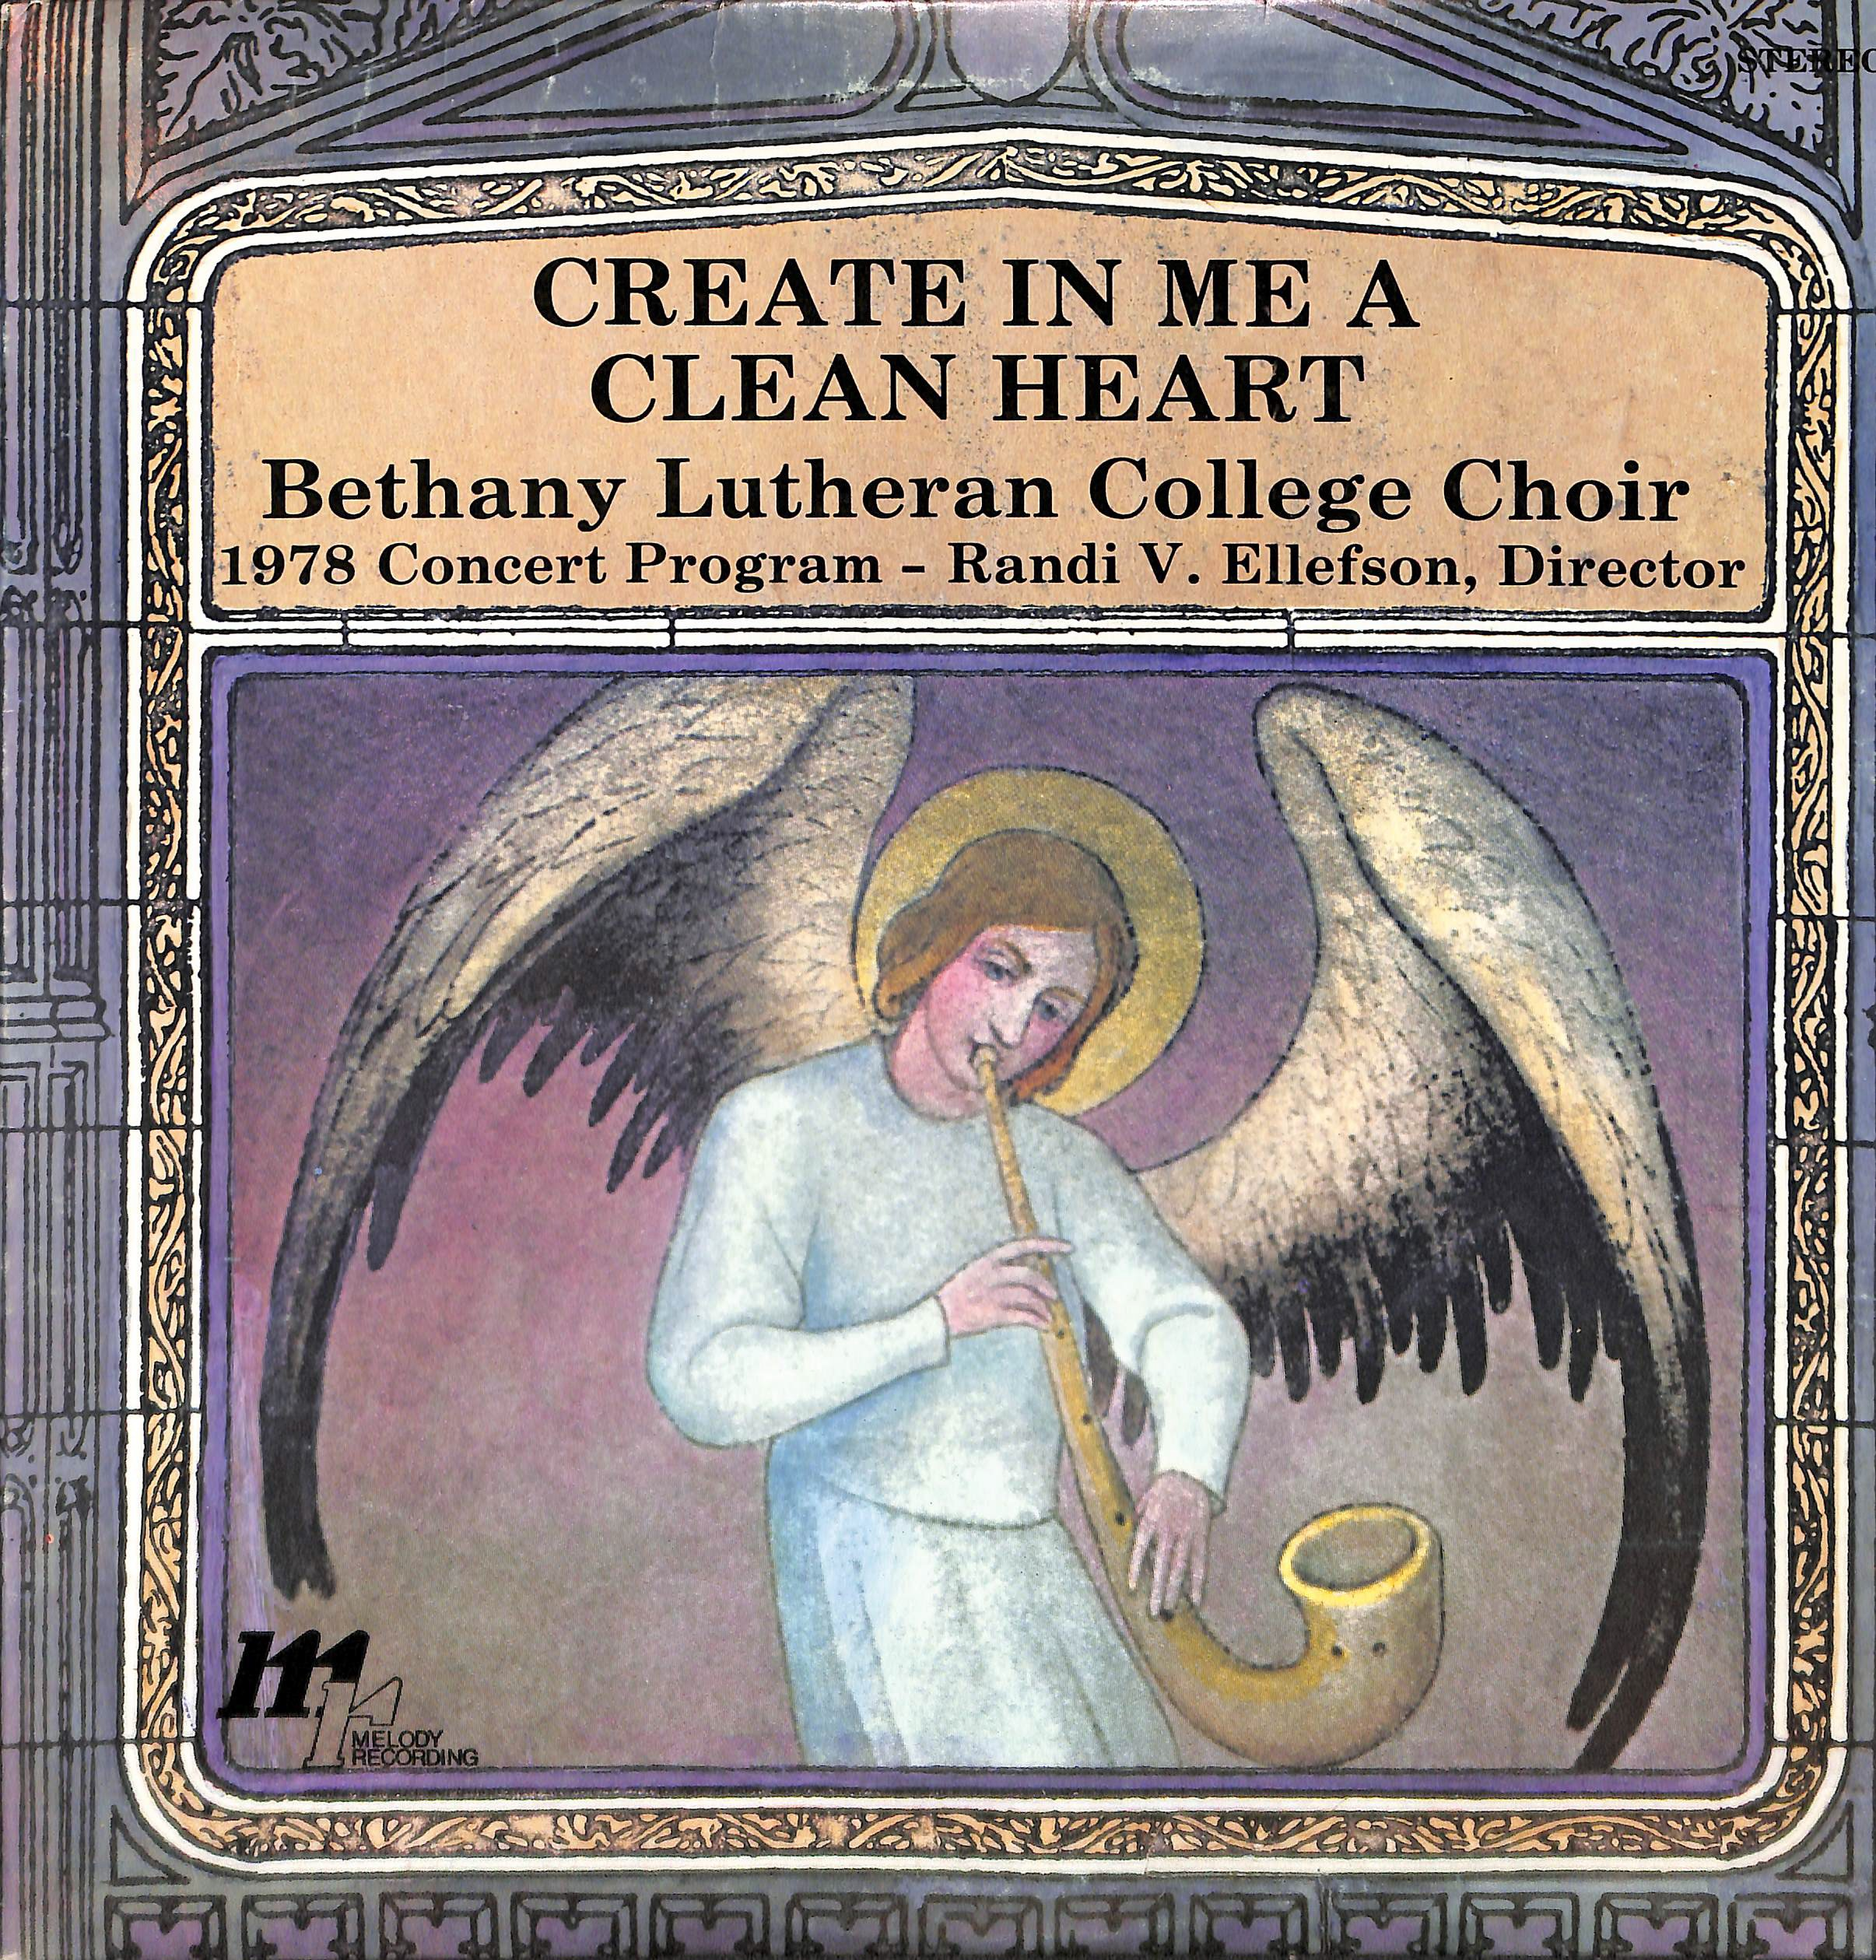 The Bethany Lutheran College Choir 1978: Create In Me A Clean Heart